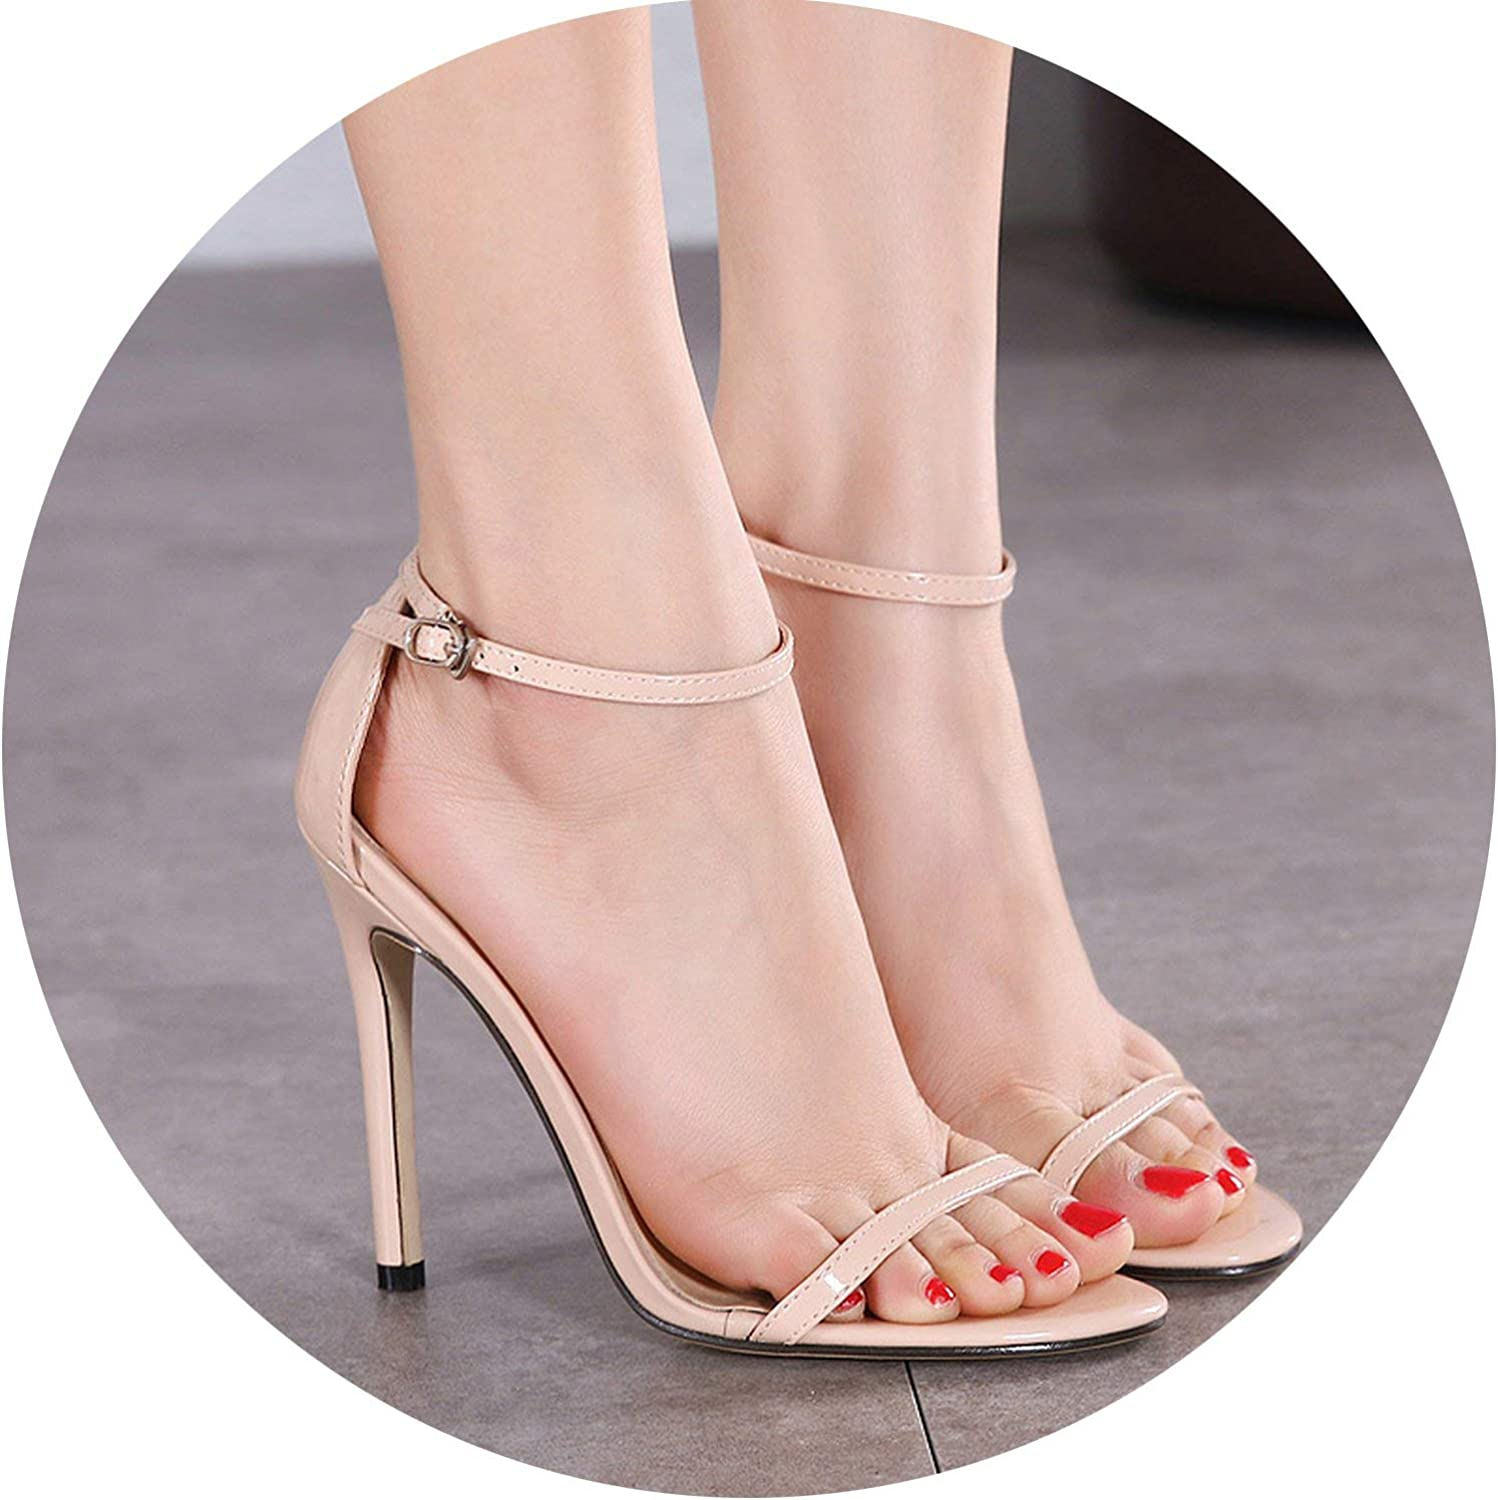 HANBINGPO Classics Sexy Women Red Wedding shoes Peep Toe Stiletto High Heels shoes Woman Sandals Black Red Nude Big Size 43 US10,Apricot,7